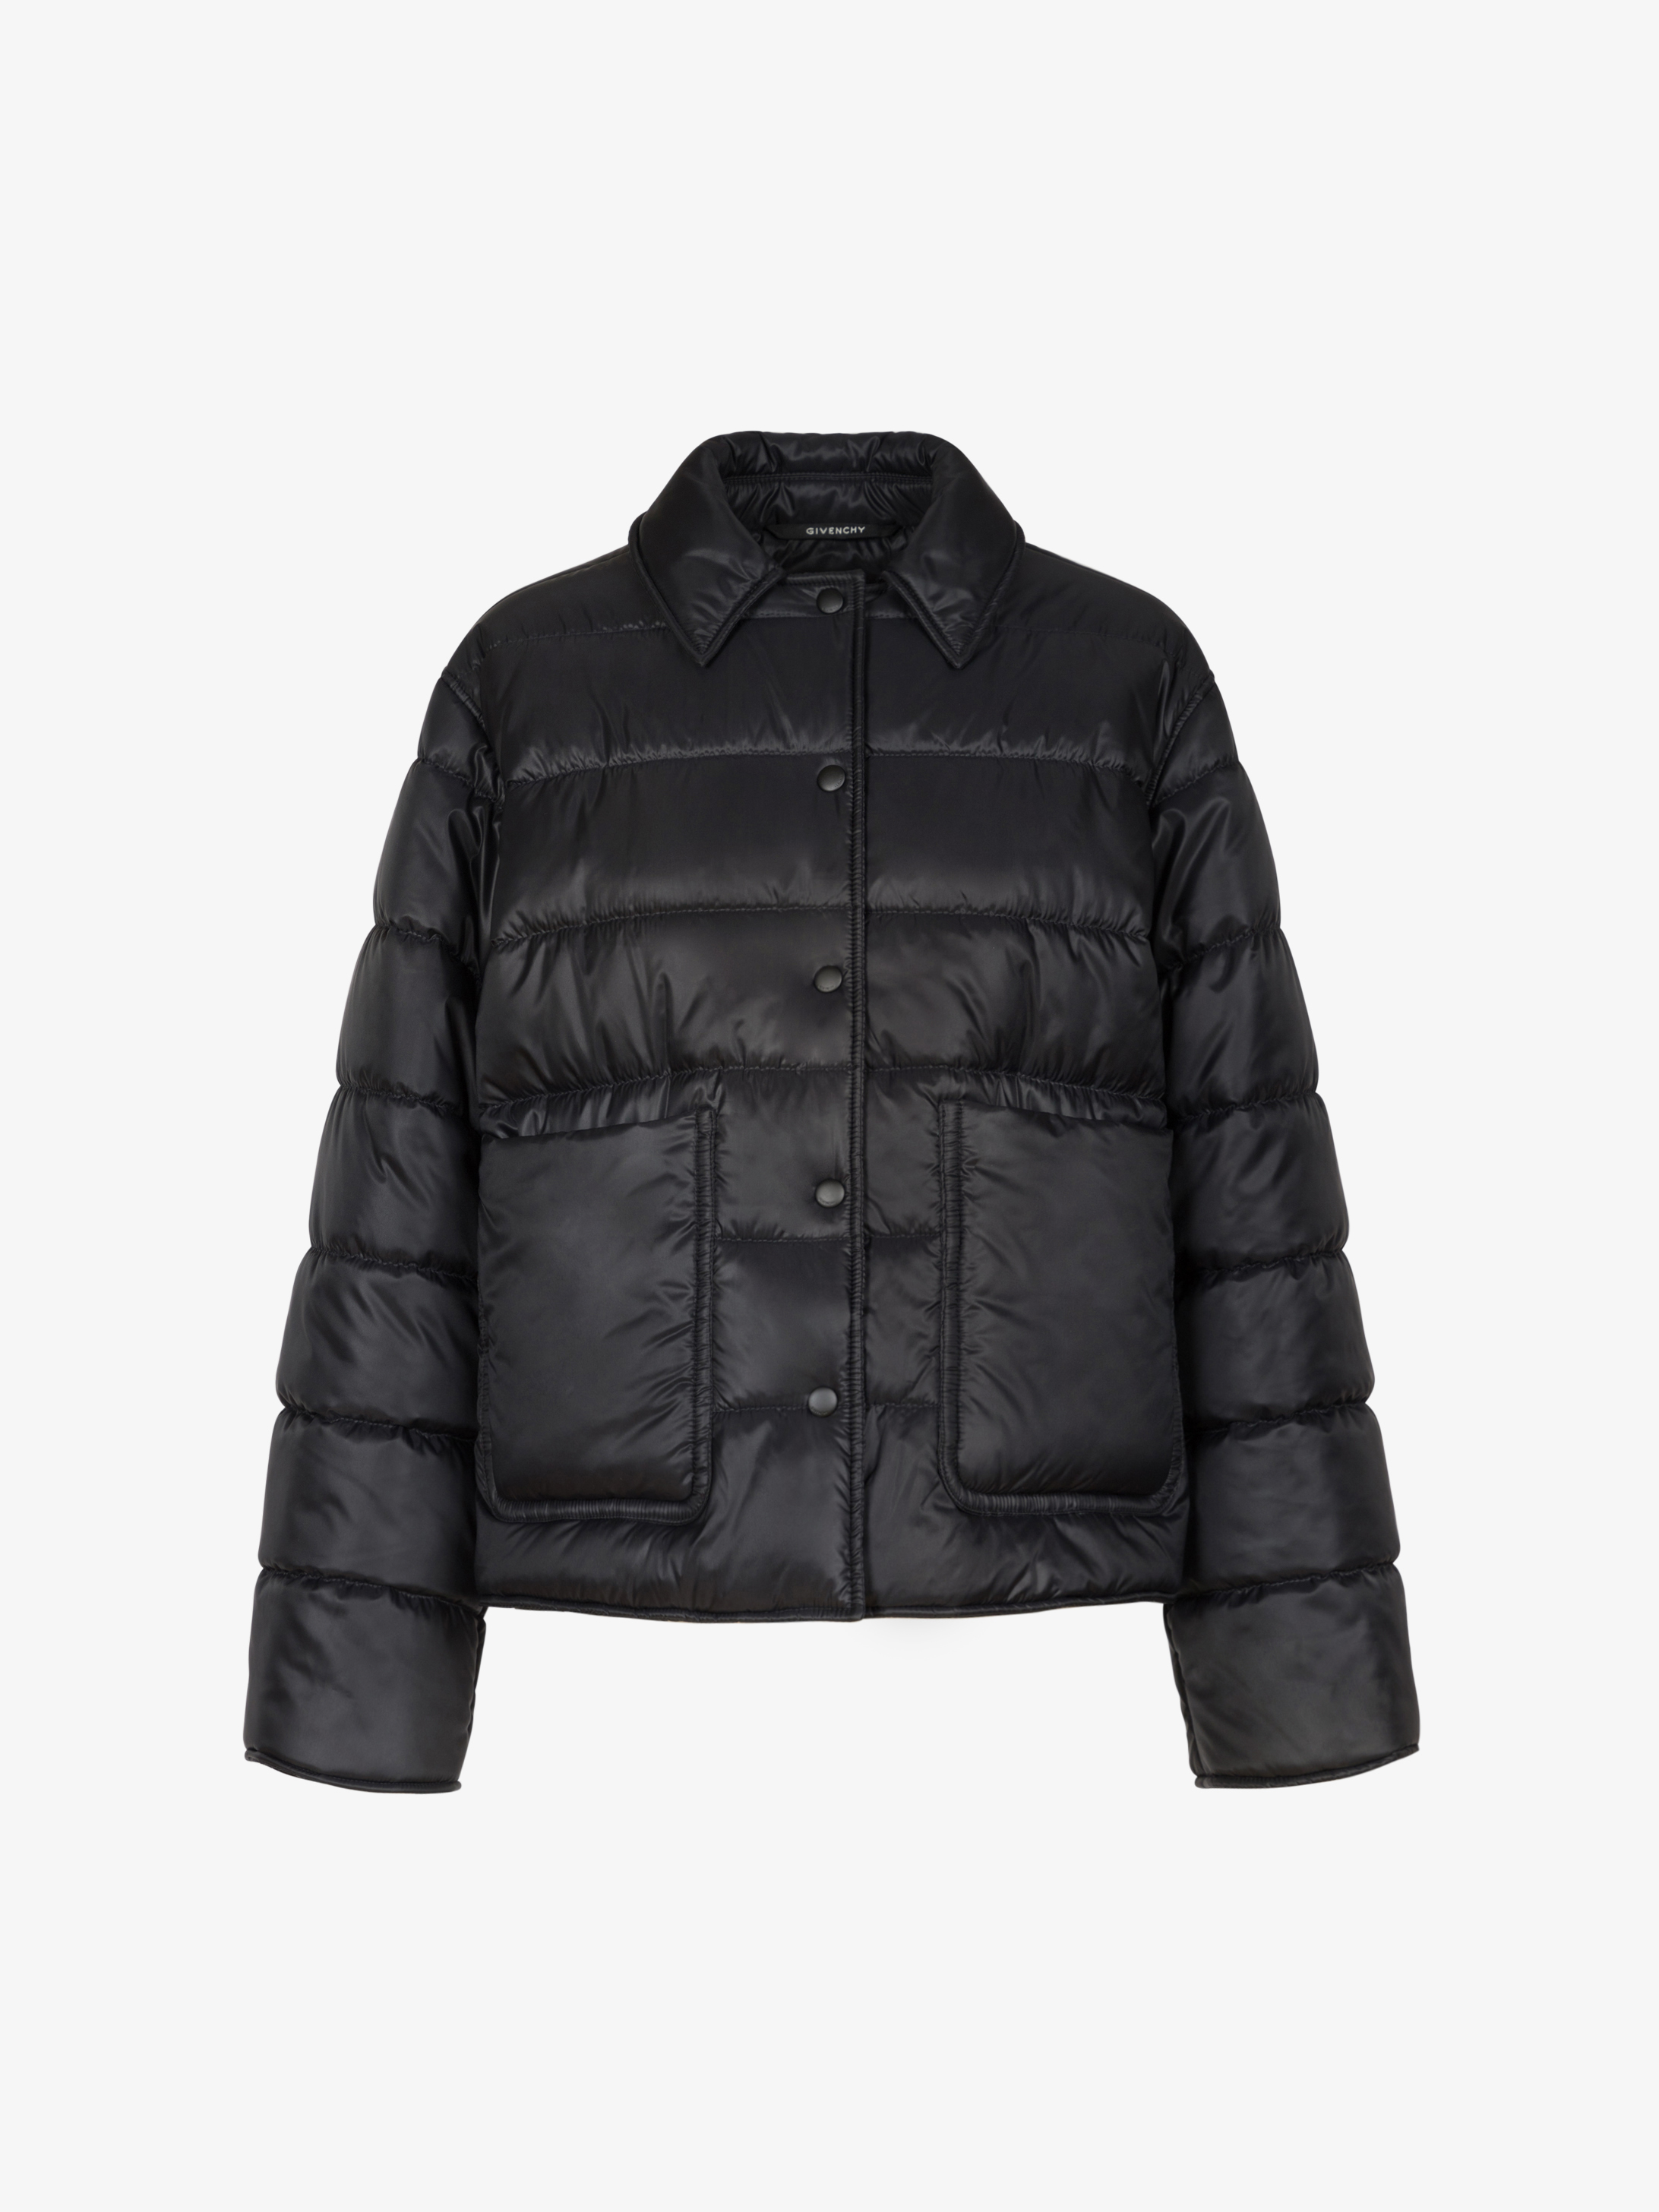 GIVENCHY puffa jacket in nylon